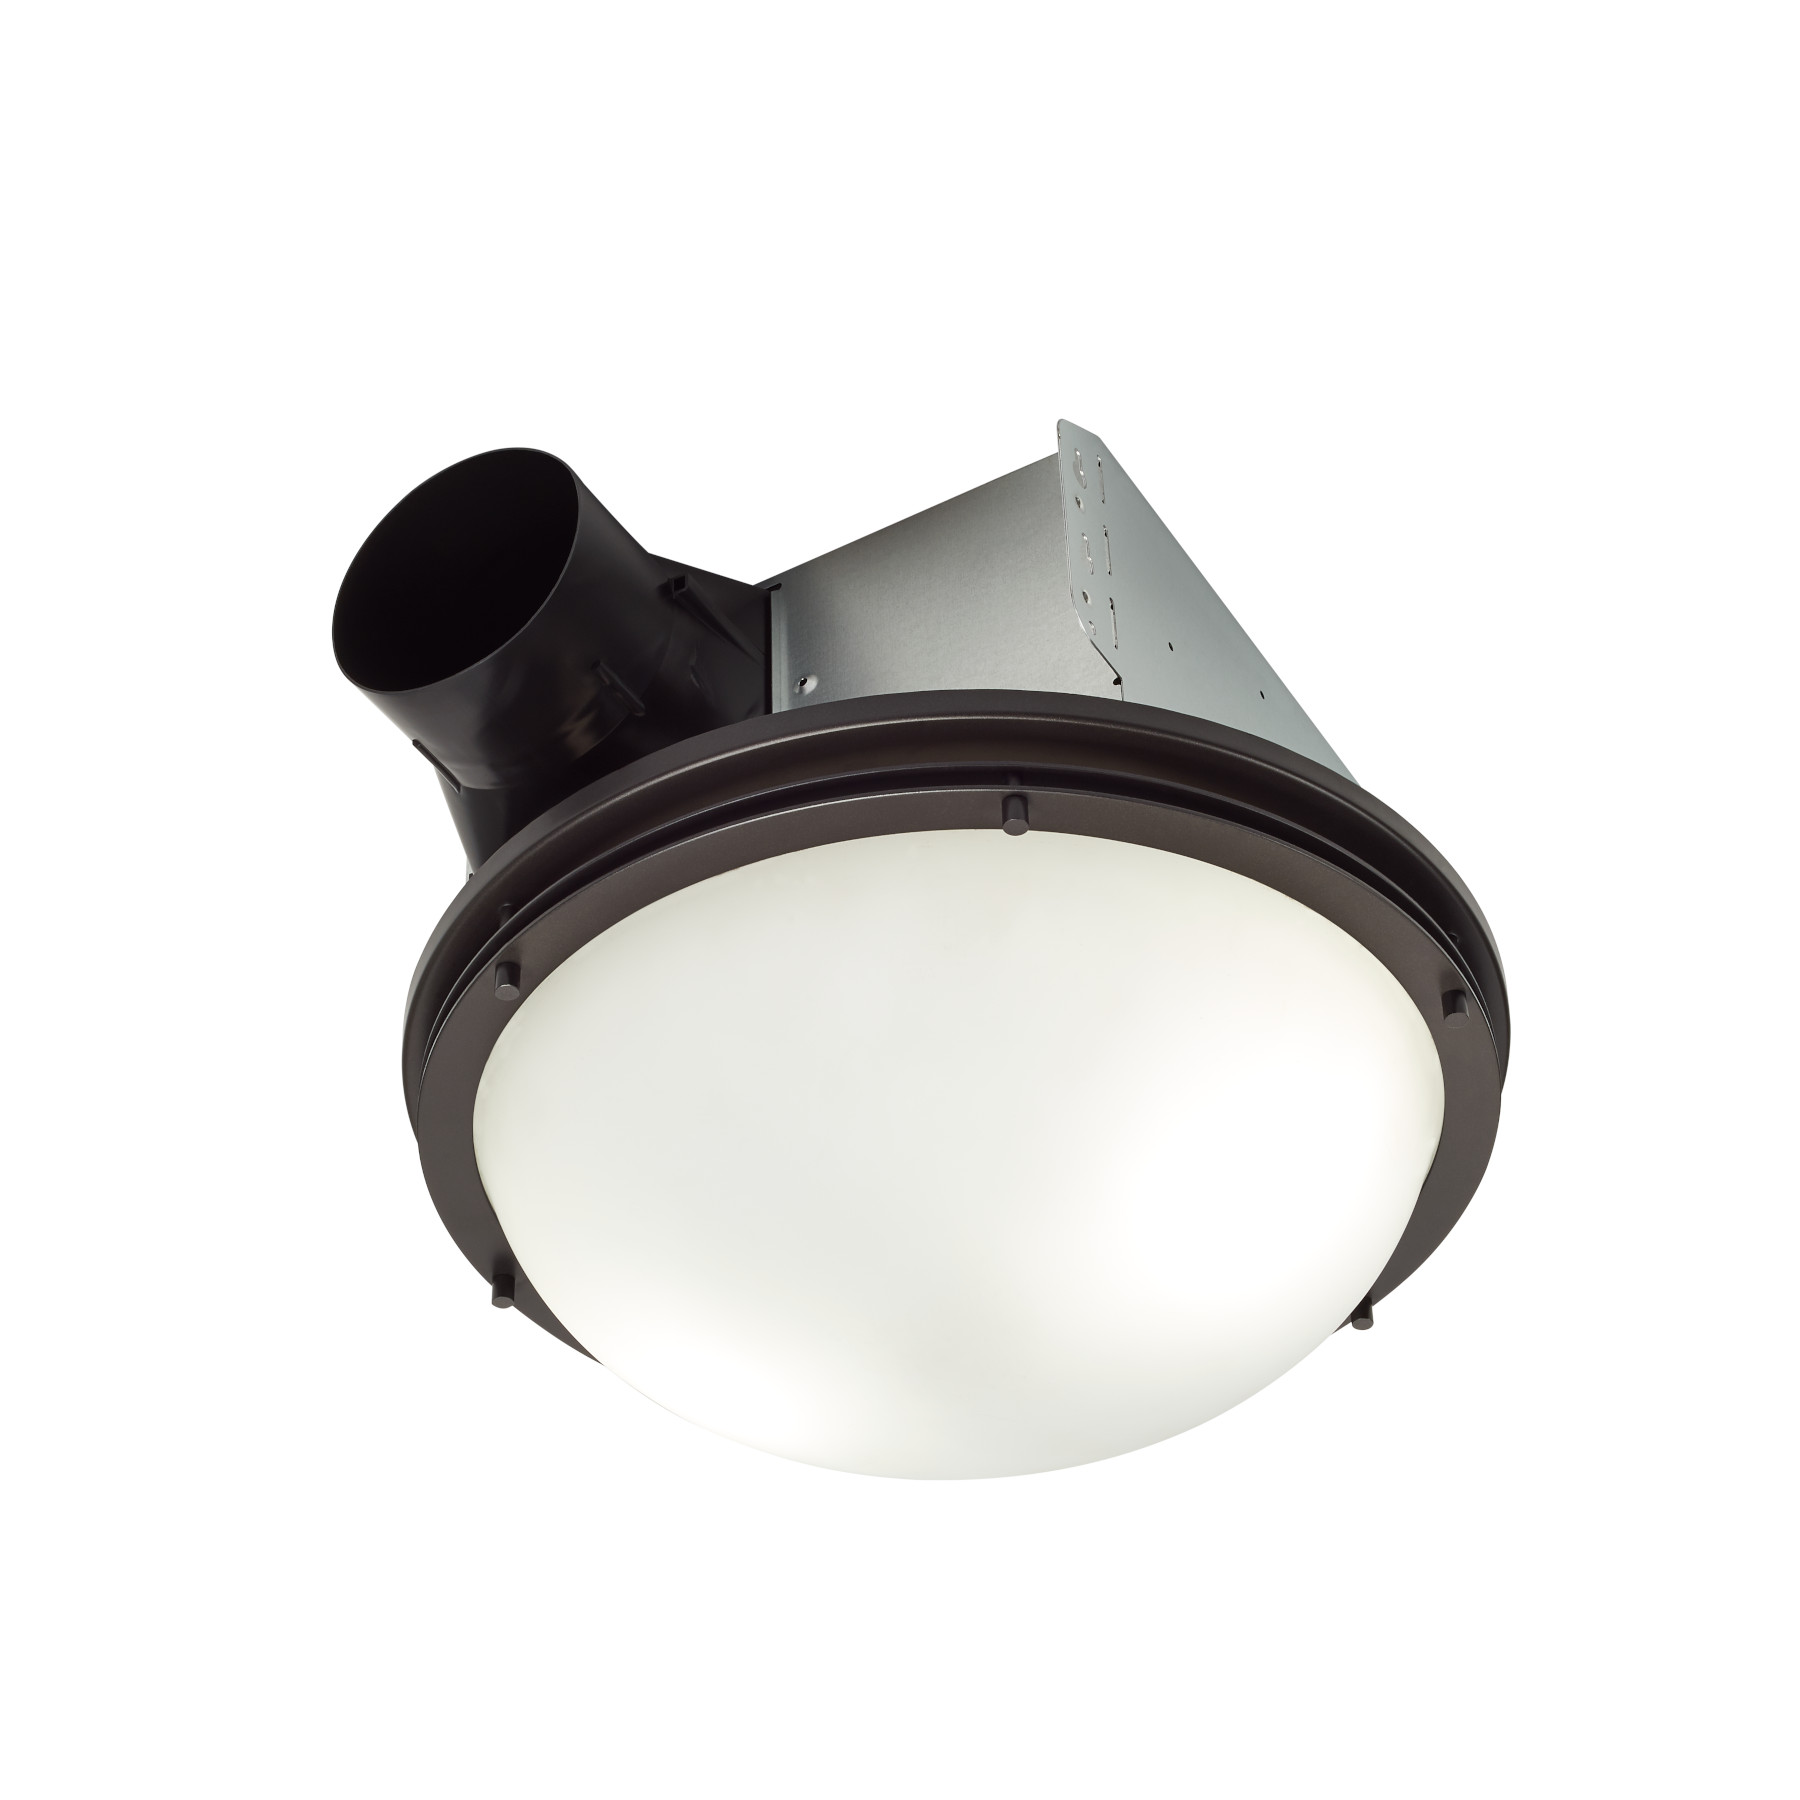 decorative oil rubbed bronze 80 cfm roomside installation bathroom exhaust fan w light and white globe